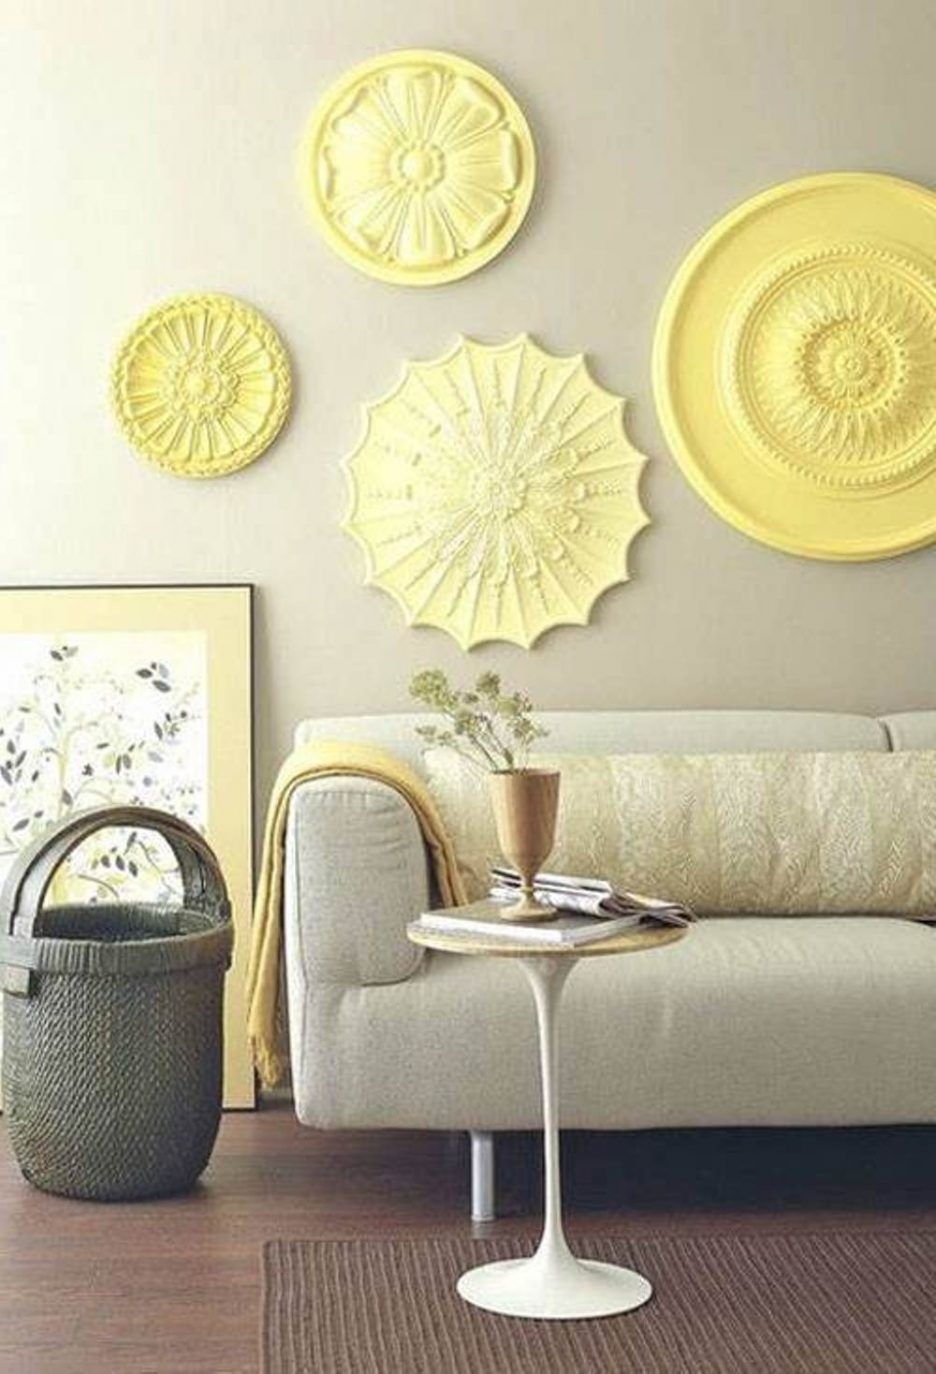 Living Room : Wonderful Wall Art Ideas For Living Room With Yellow in Recent Wall Art Accents